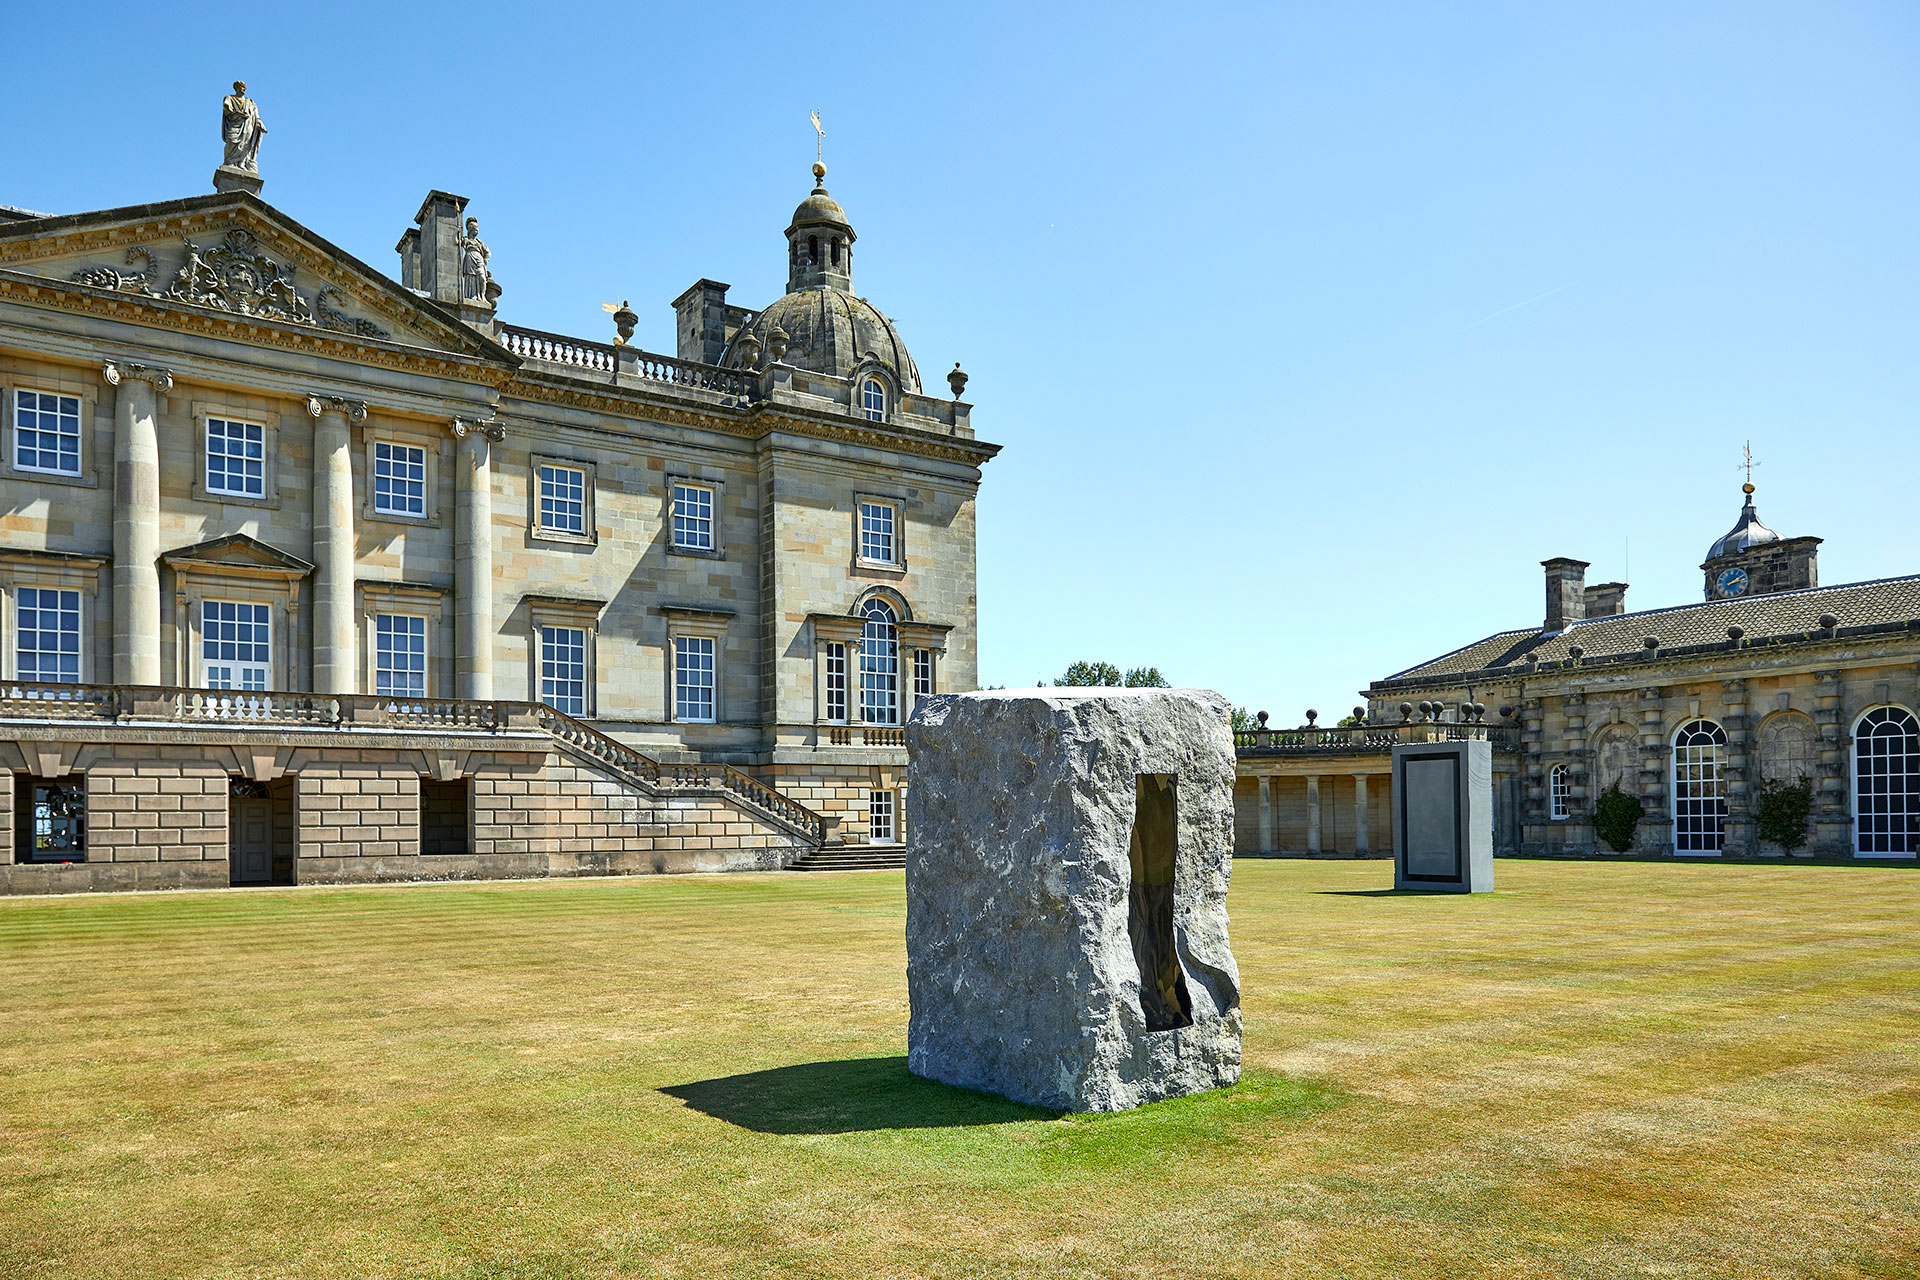 Exhibition view, Anish Kapoor at Houghton Hall. © Anish Kapoor. All rights reserved DACS, 2020. Photo by Pete Huggins. Featured: Untitled, 1997, Kilkenny limestone. Courtesy the artist. Rectangle Within a Rectangle, 2018, granite. Courtesy the artist and Lisson Gallery.